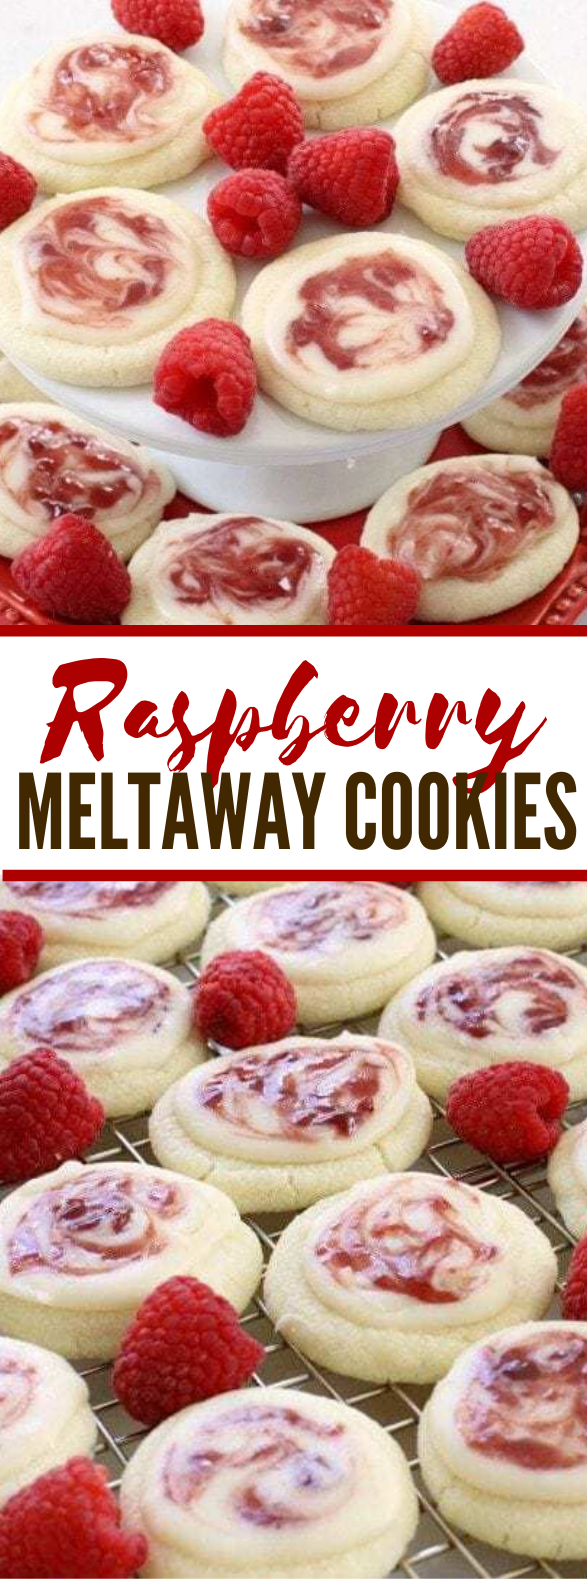 RASPBERRY MELTAWAY COOKIES #desserts #sweets